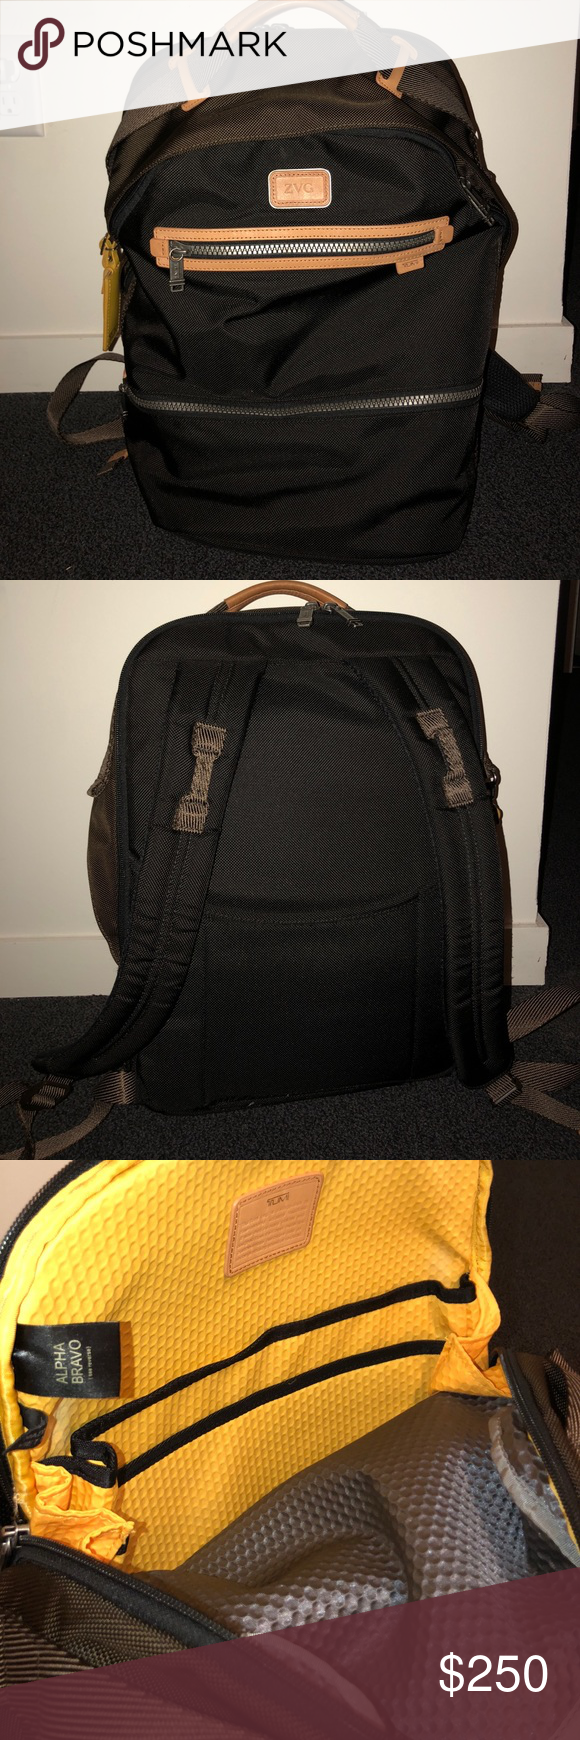 Tumi Alpha Bravo Backpack Used, but in great condition